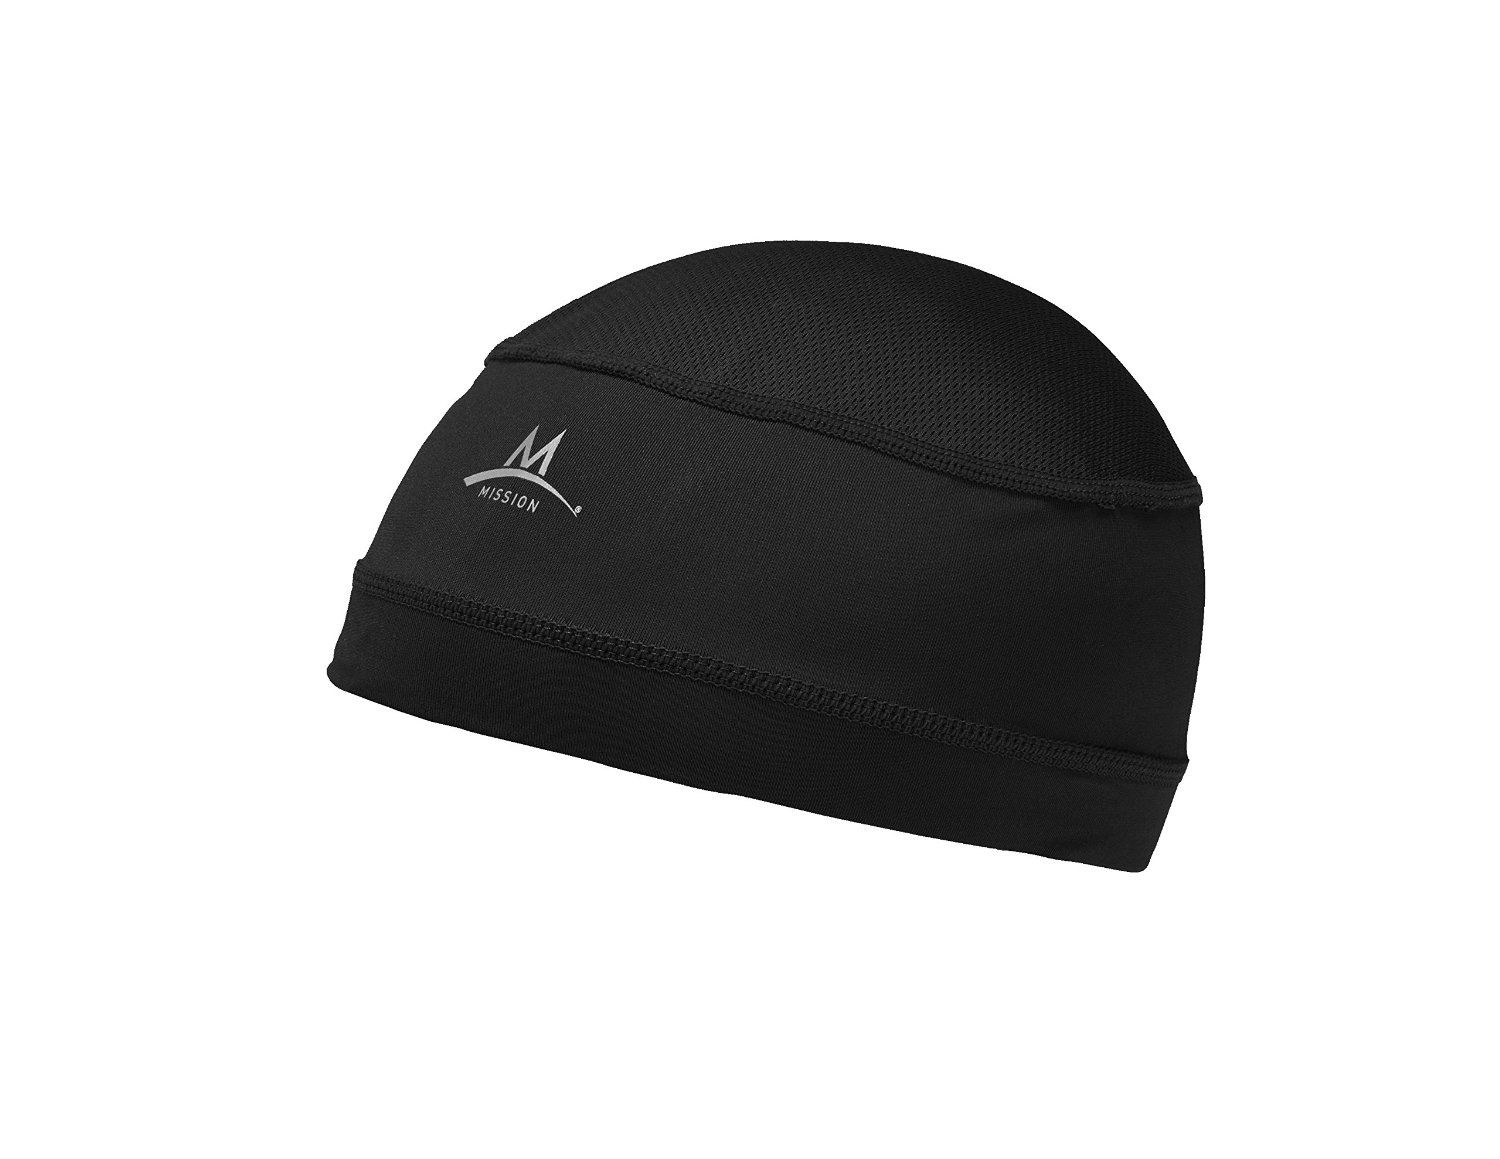 Mission Athletecare Enduracool Helmet Liner, Black - Amazon Lightning Deal Picks - http://wp.me/p56Eop-FN0